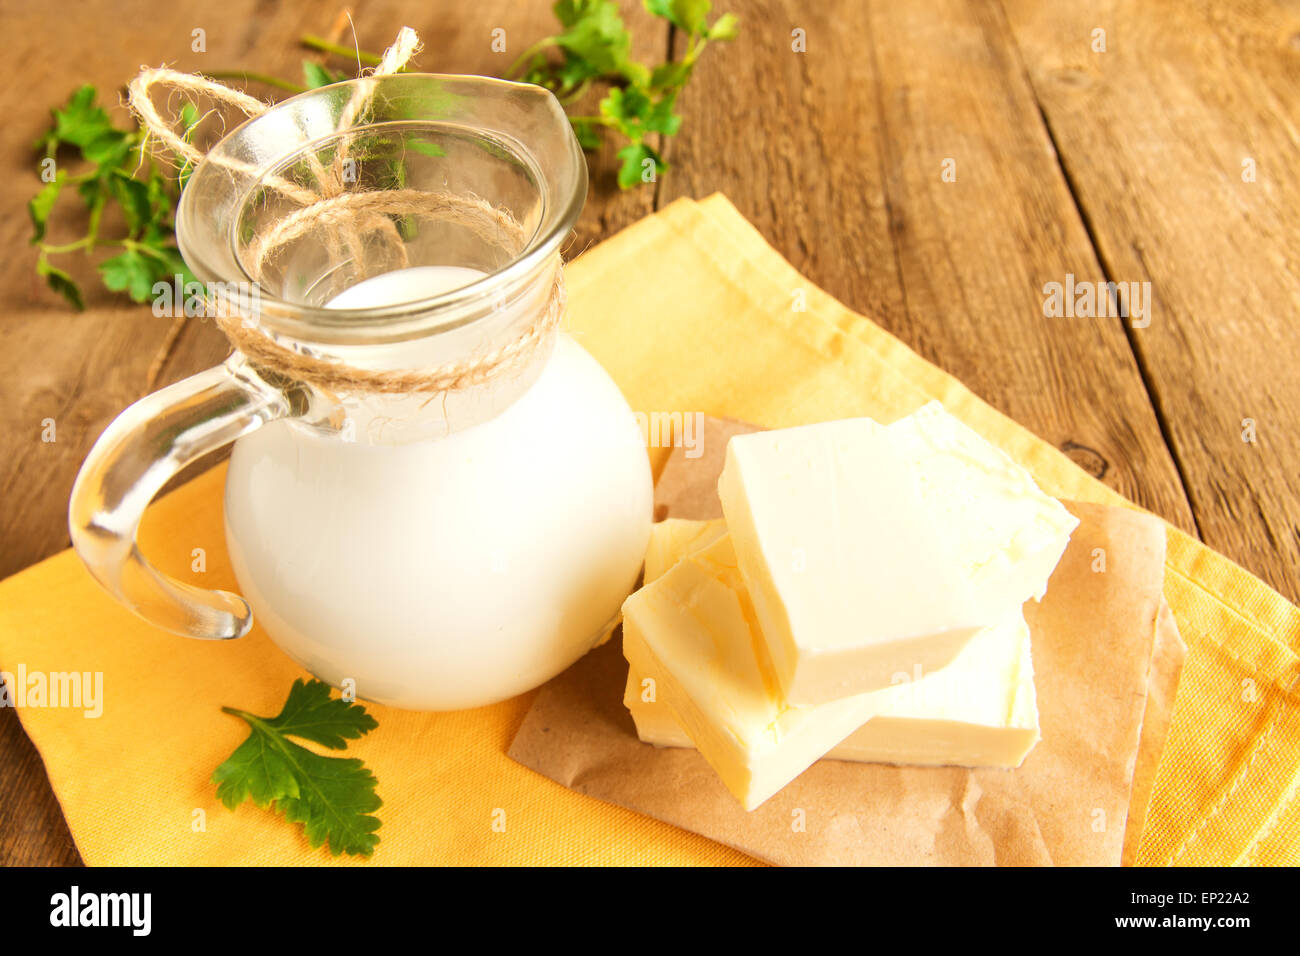 Butter and milk (dairy products) over rustic wooden table - Stock Image